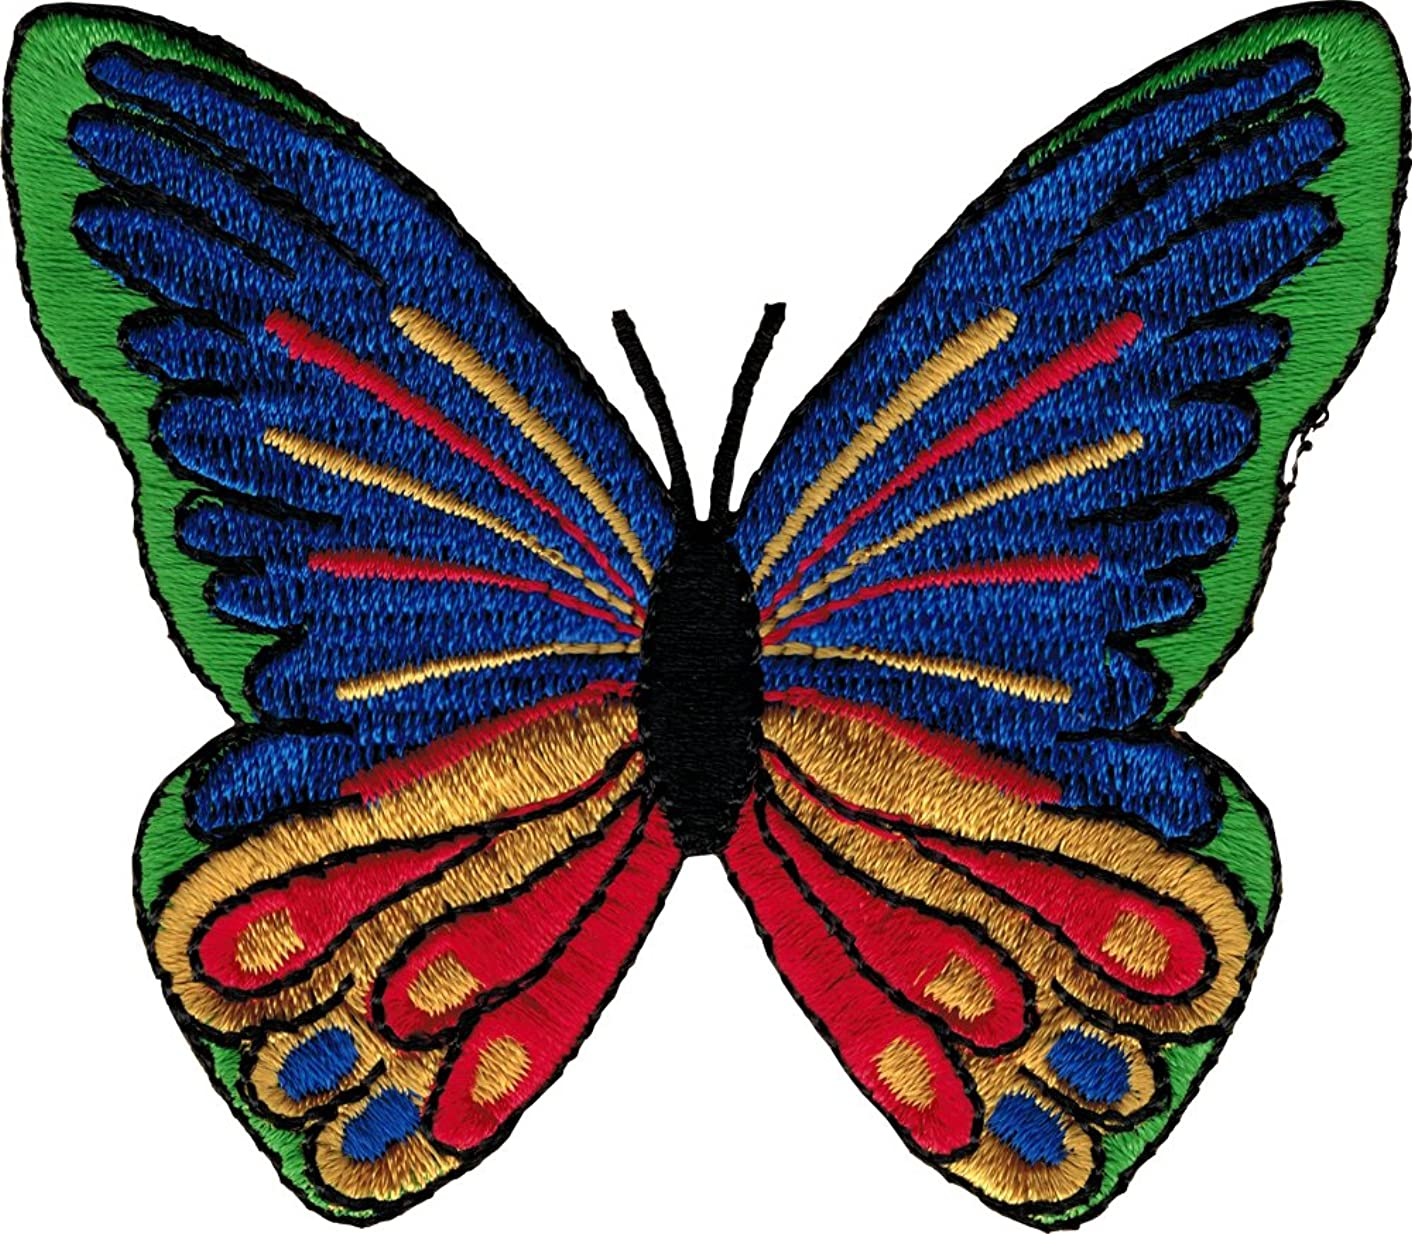 Beautiful Butterfly in Primary Colors (Red, Orange, Yellow, Green, Blue, Purple & Black) - Embroidered Iron On or Sew On Patch